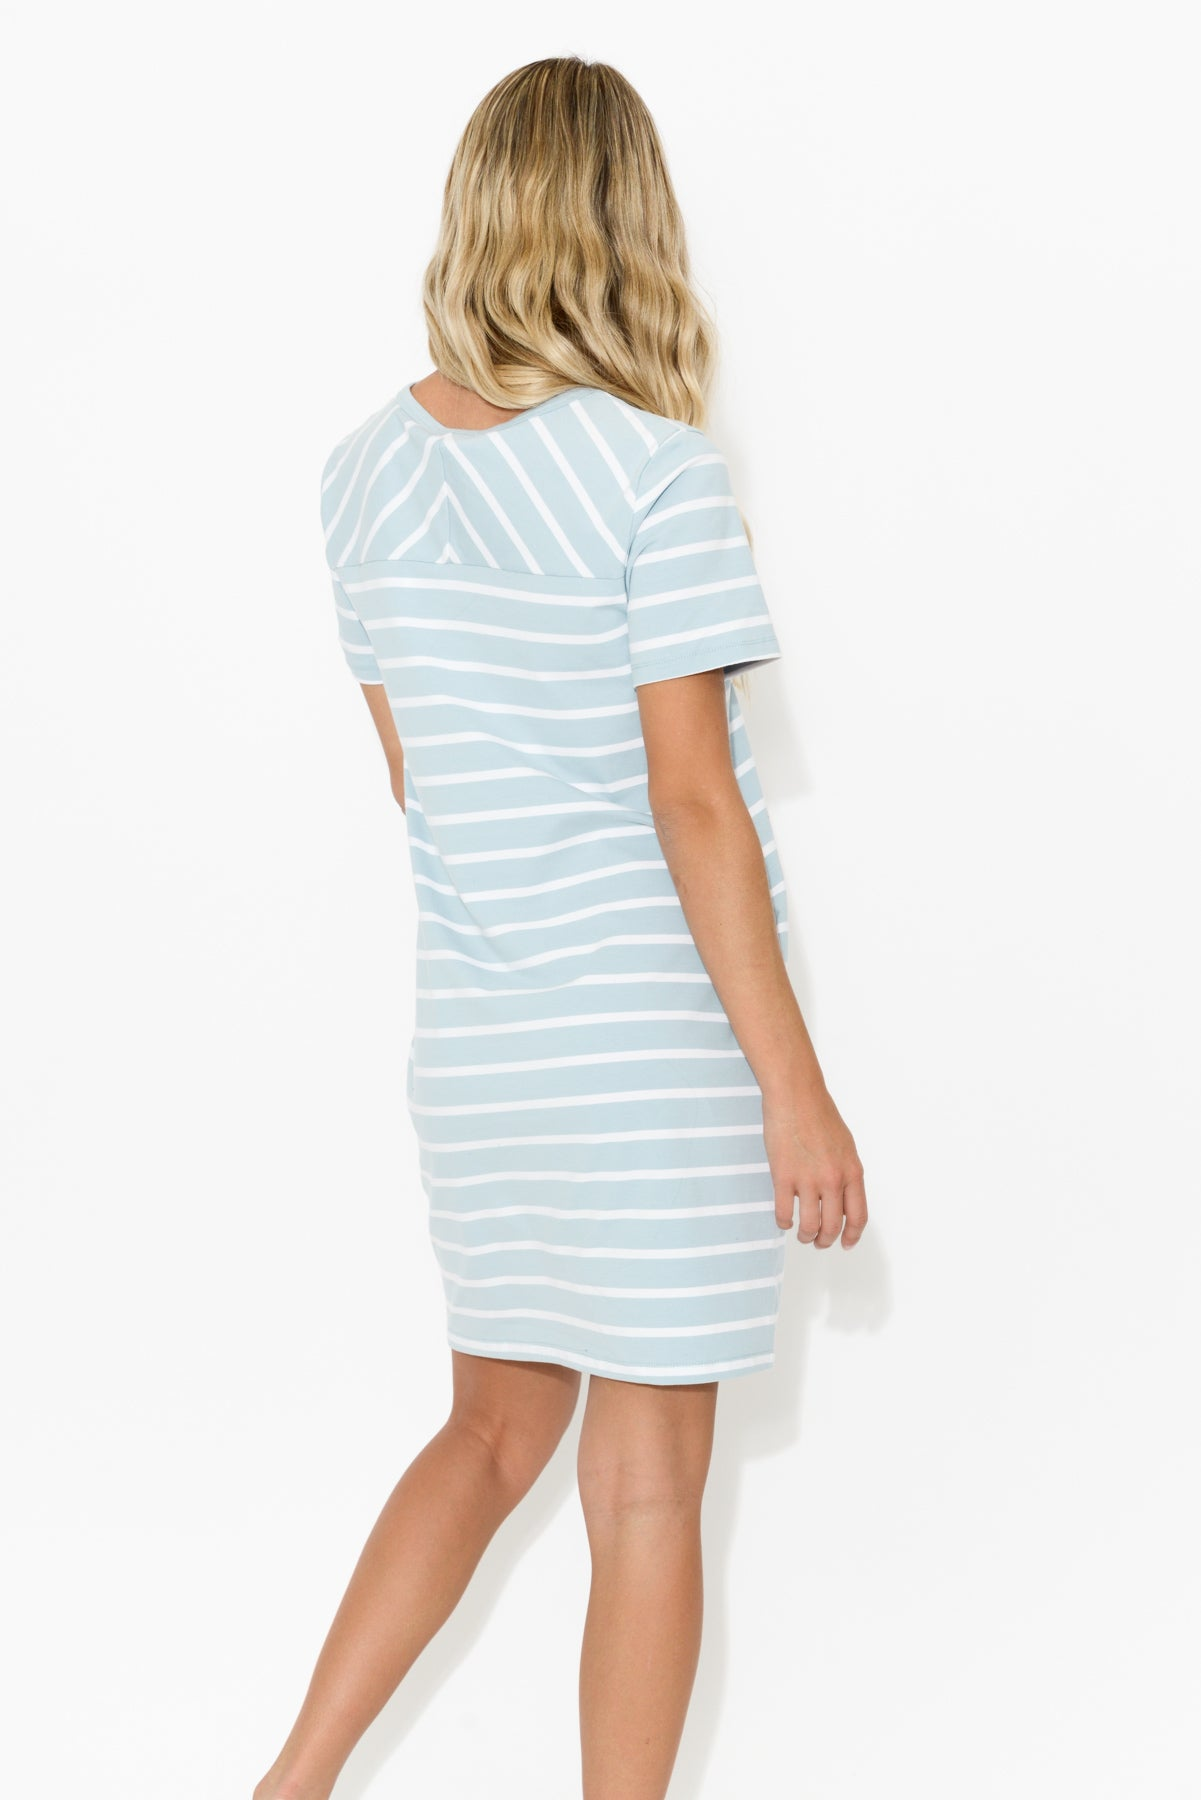 Gwen Blue Stripe Dress